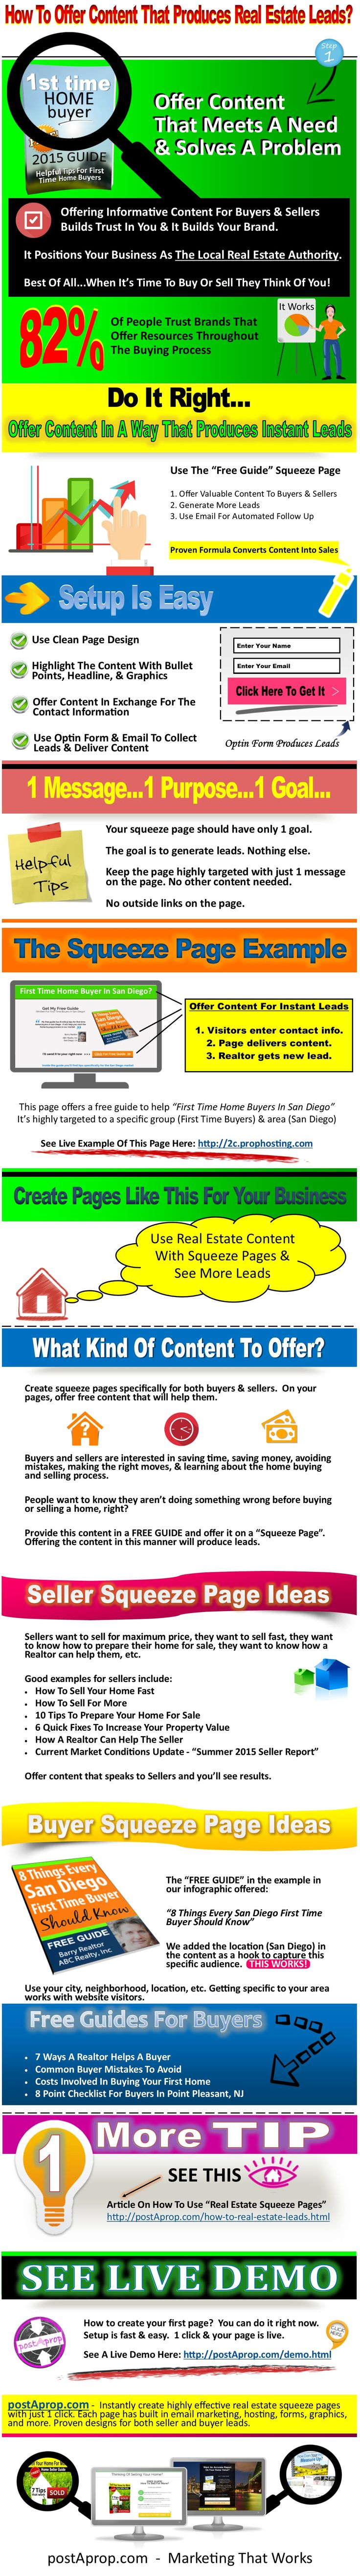 Realtor Marketing With Content & Lead Pages